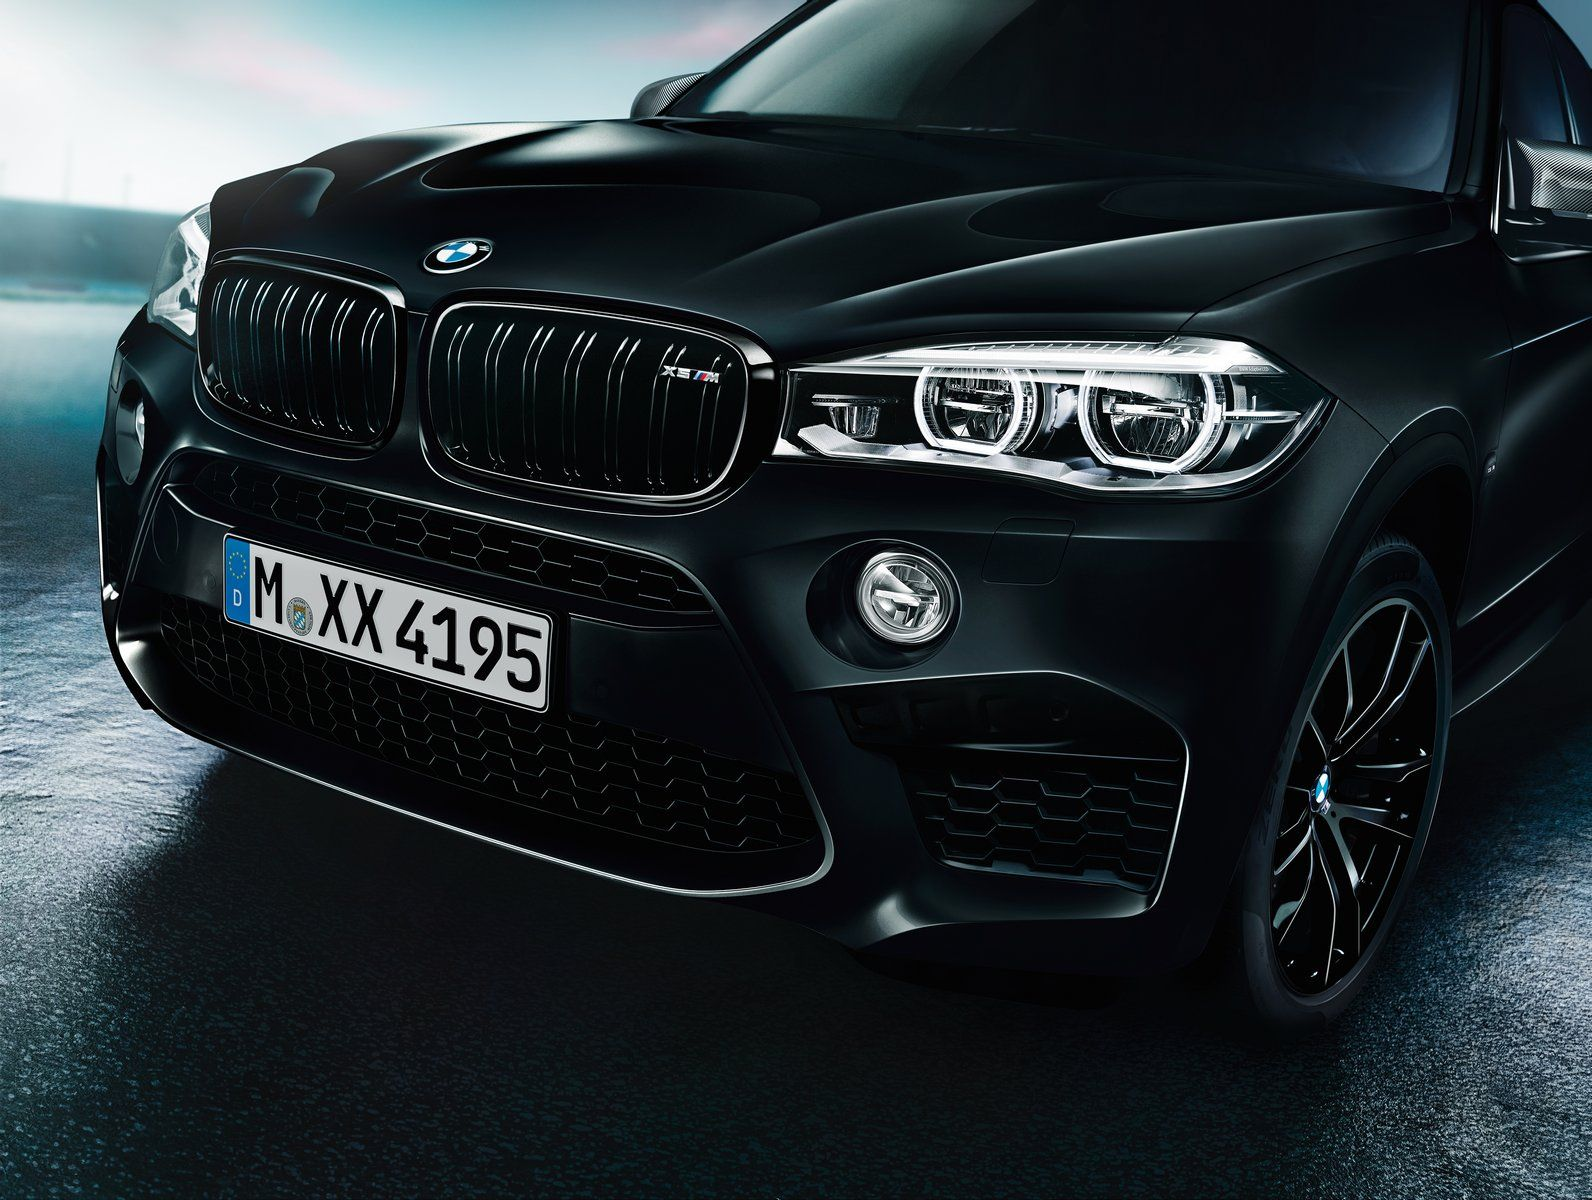 Bmw Unveils New X5 M And X6 M Black Fire Editions Carscoops Bmw X6 Bmw Black Bmw X5 M